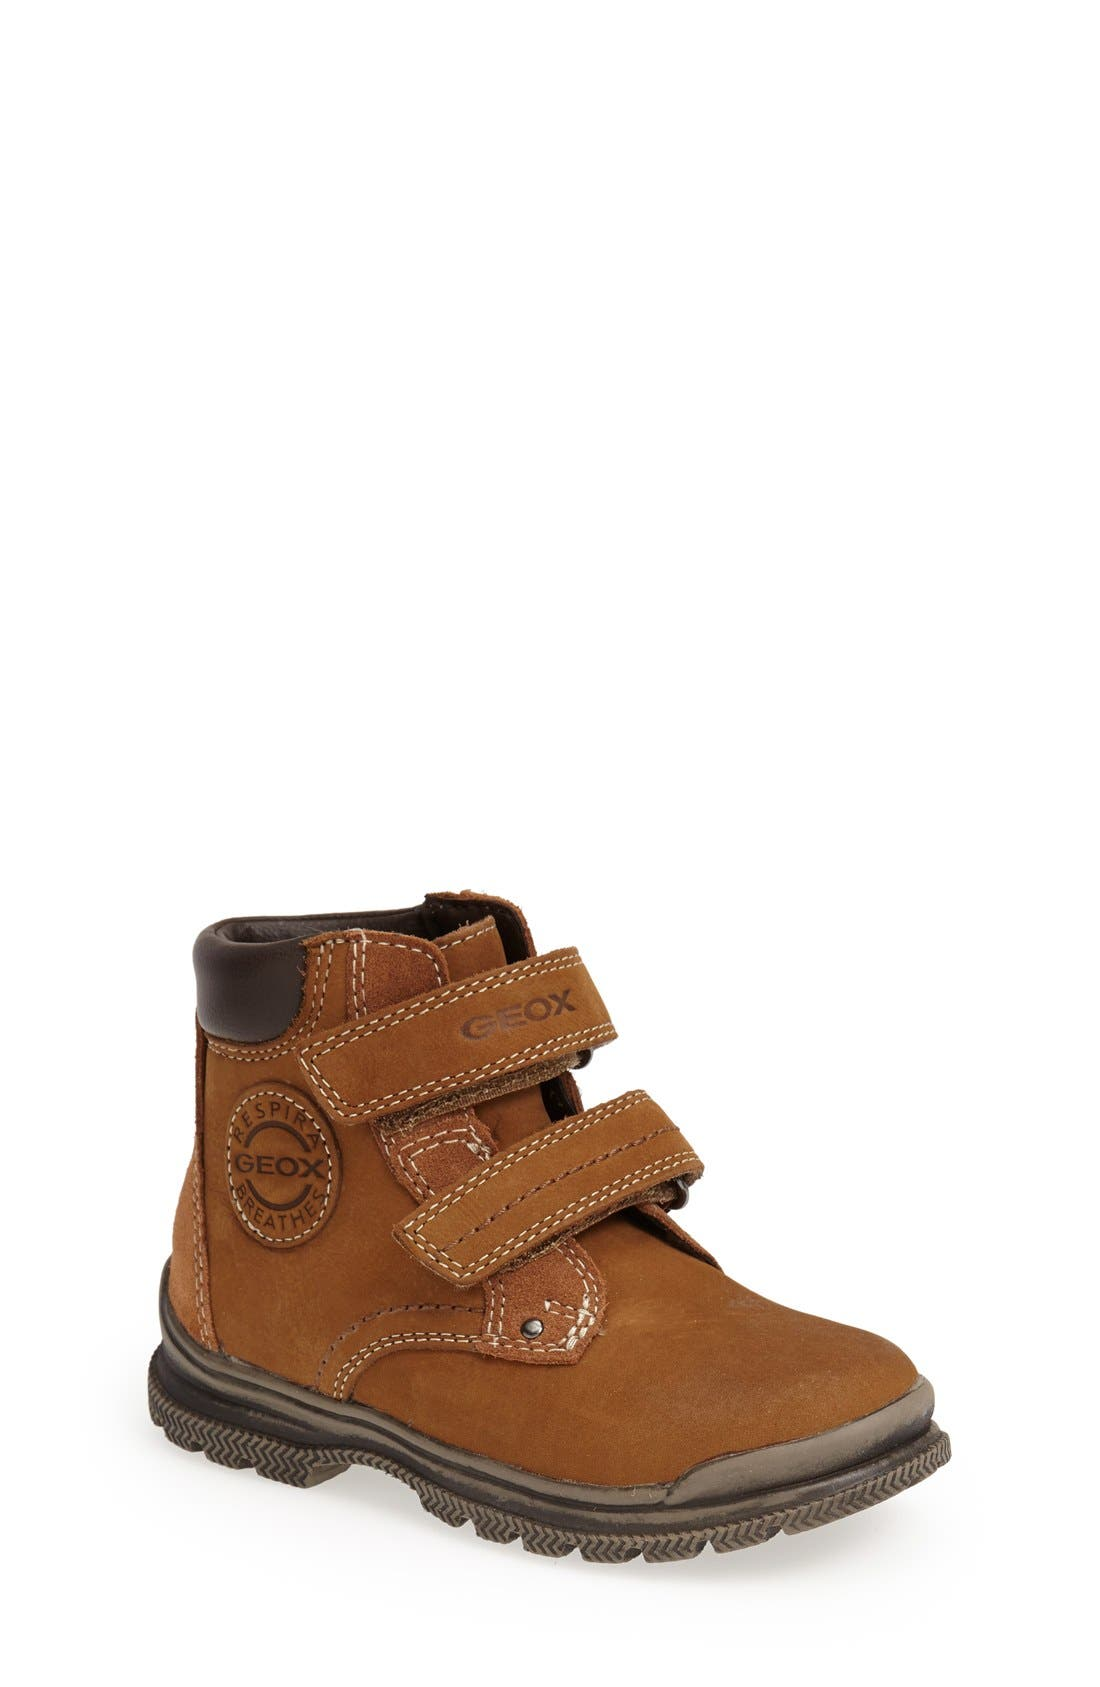 Main Image - Geox 'William 18' Boot (Toddler, Little Kid & Big Kid)